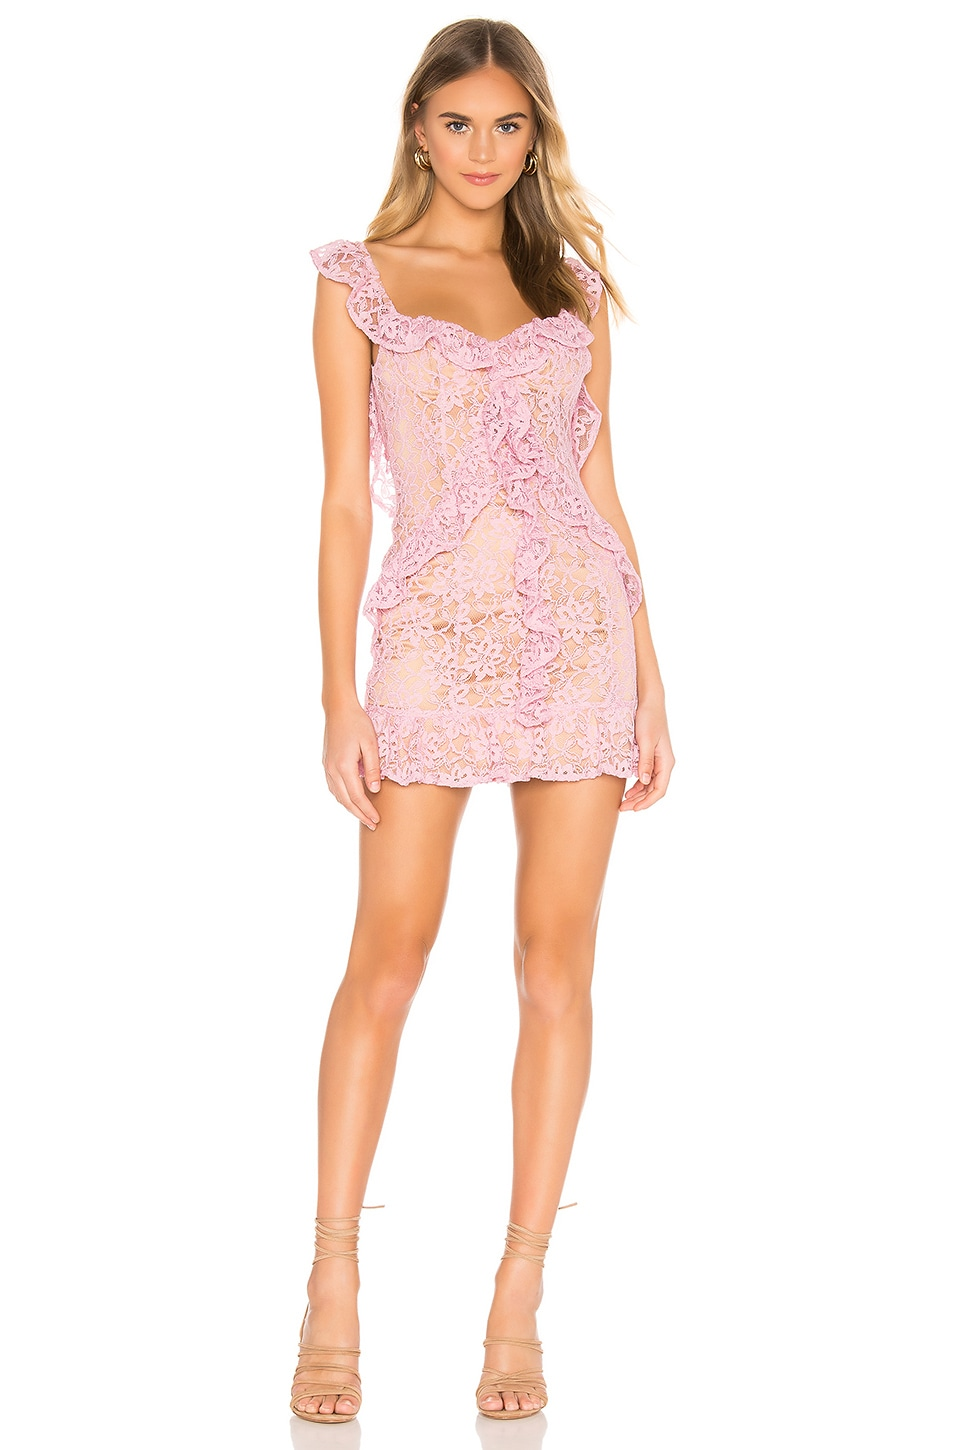 MAJORELLE Ashton Mini Dress in Candy Pink